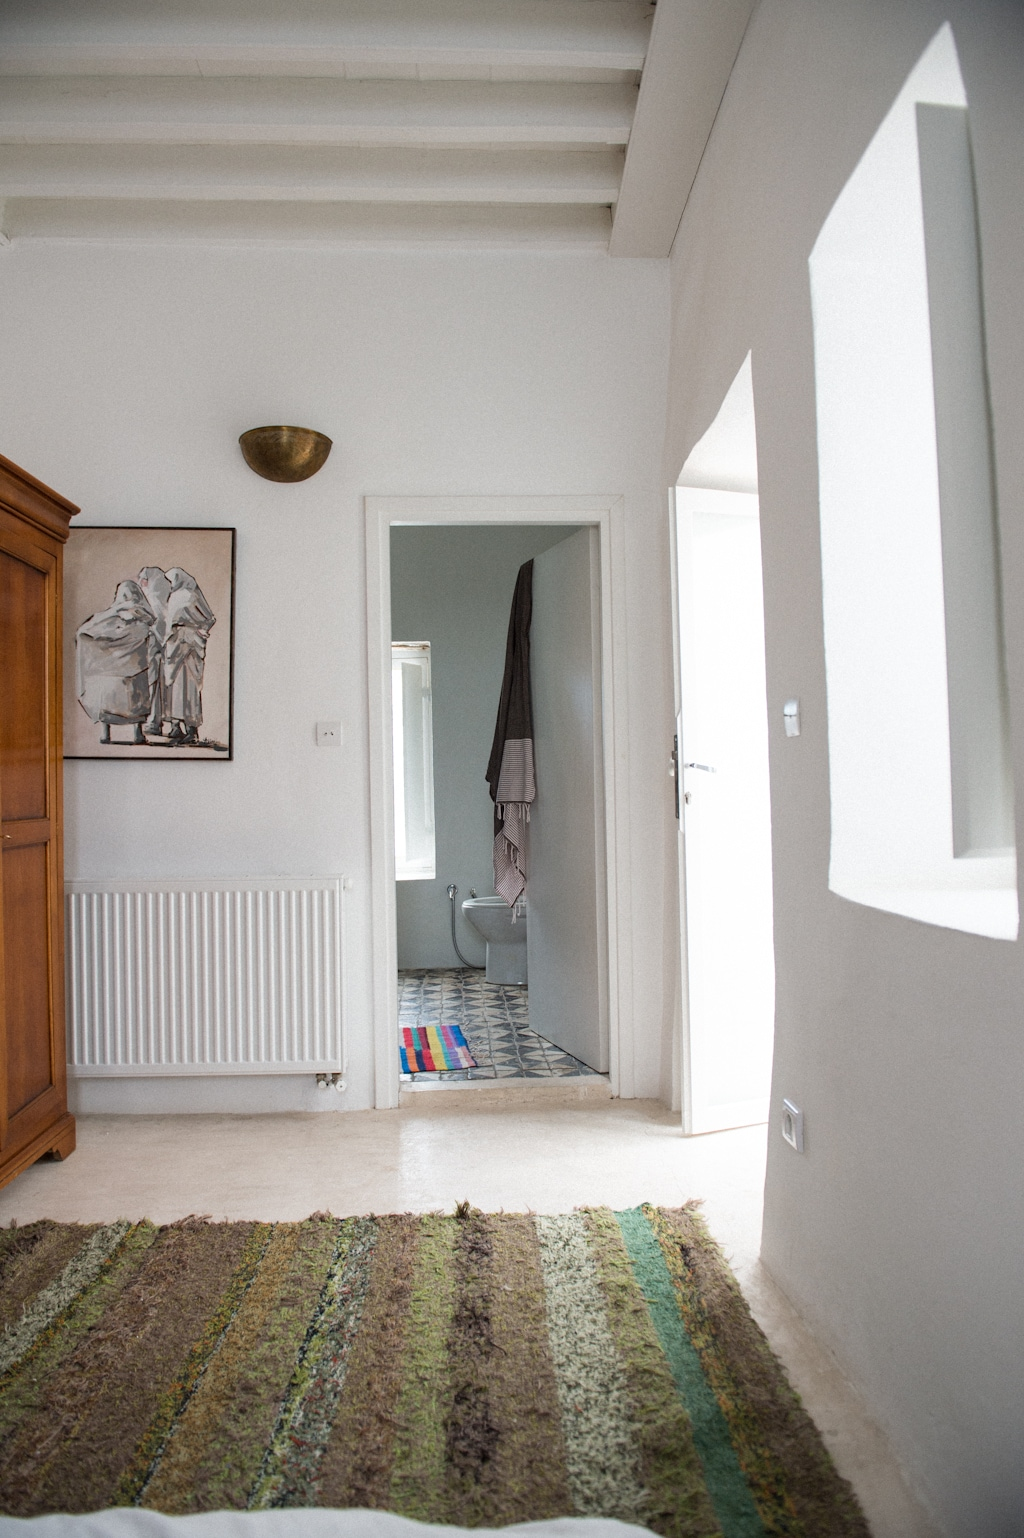 From main Bedroom to bathroom